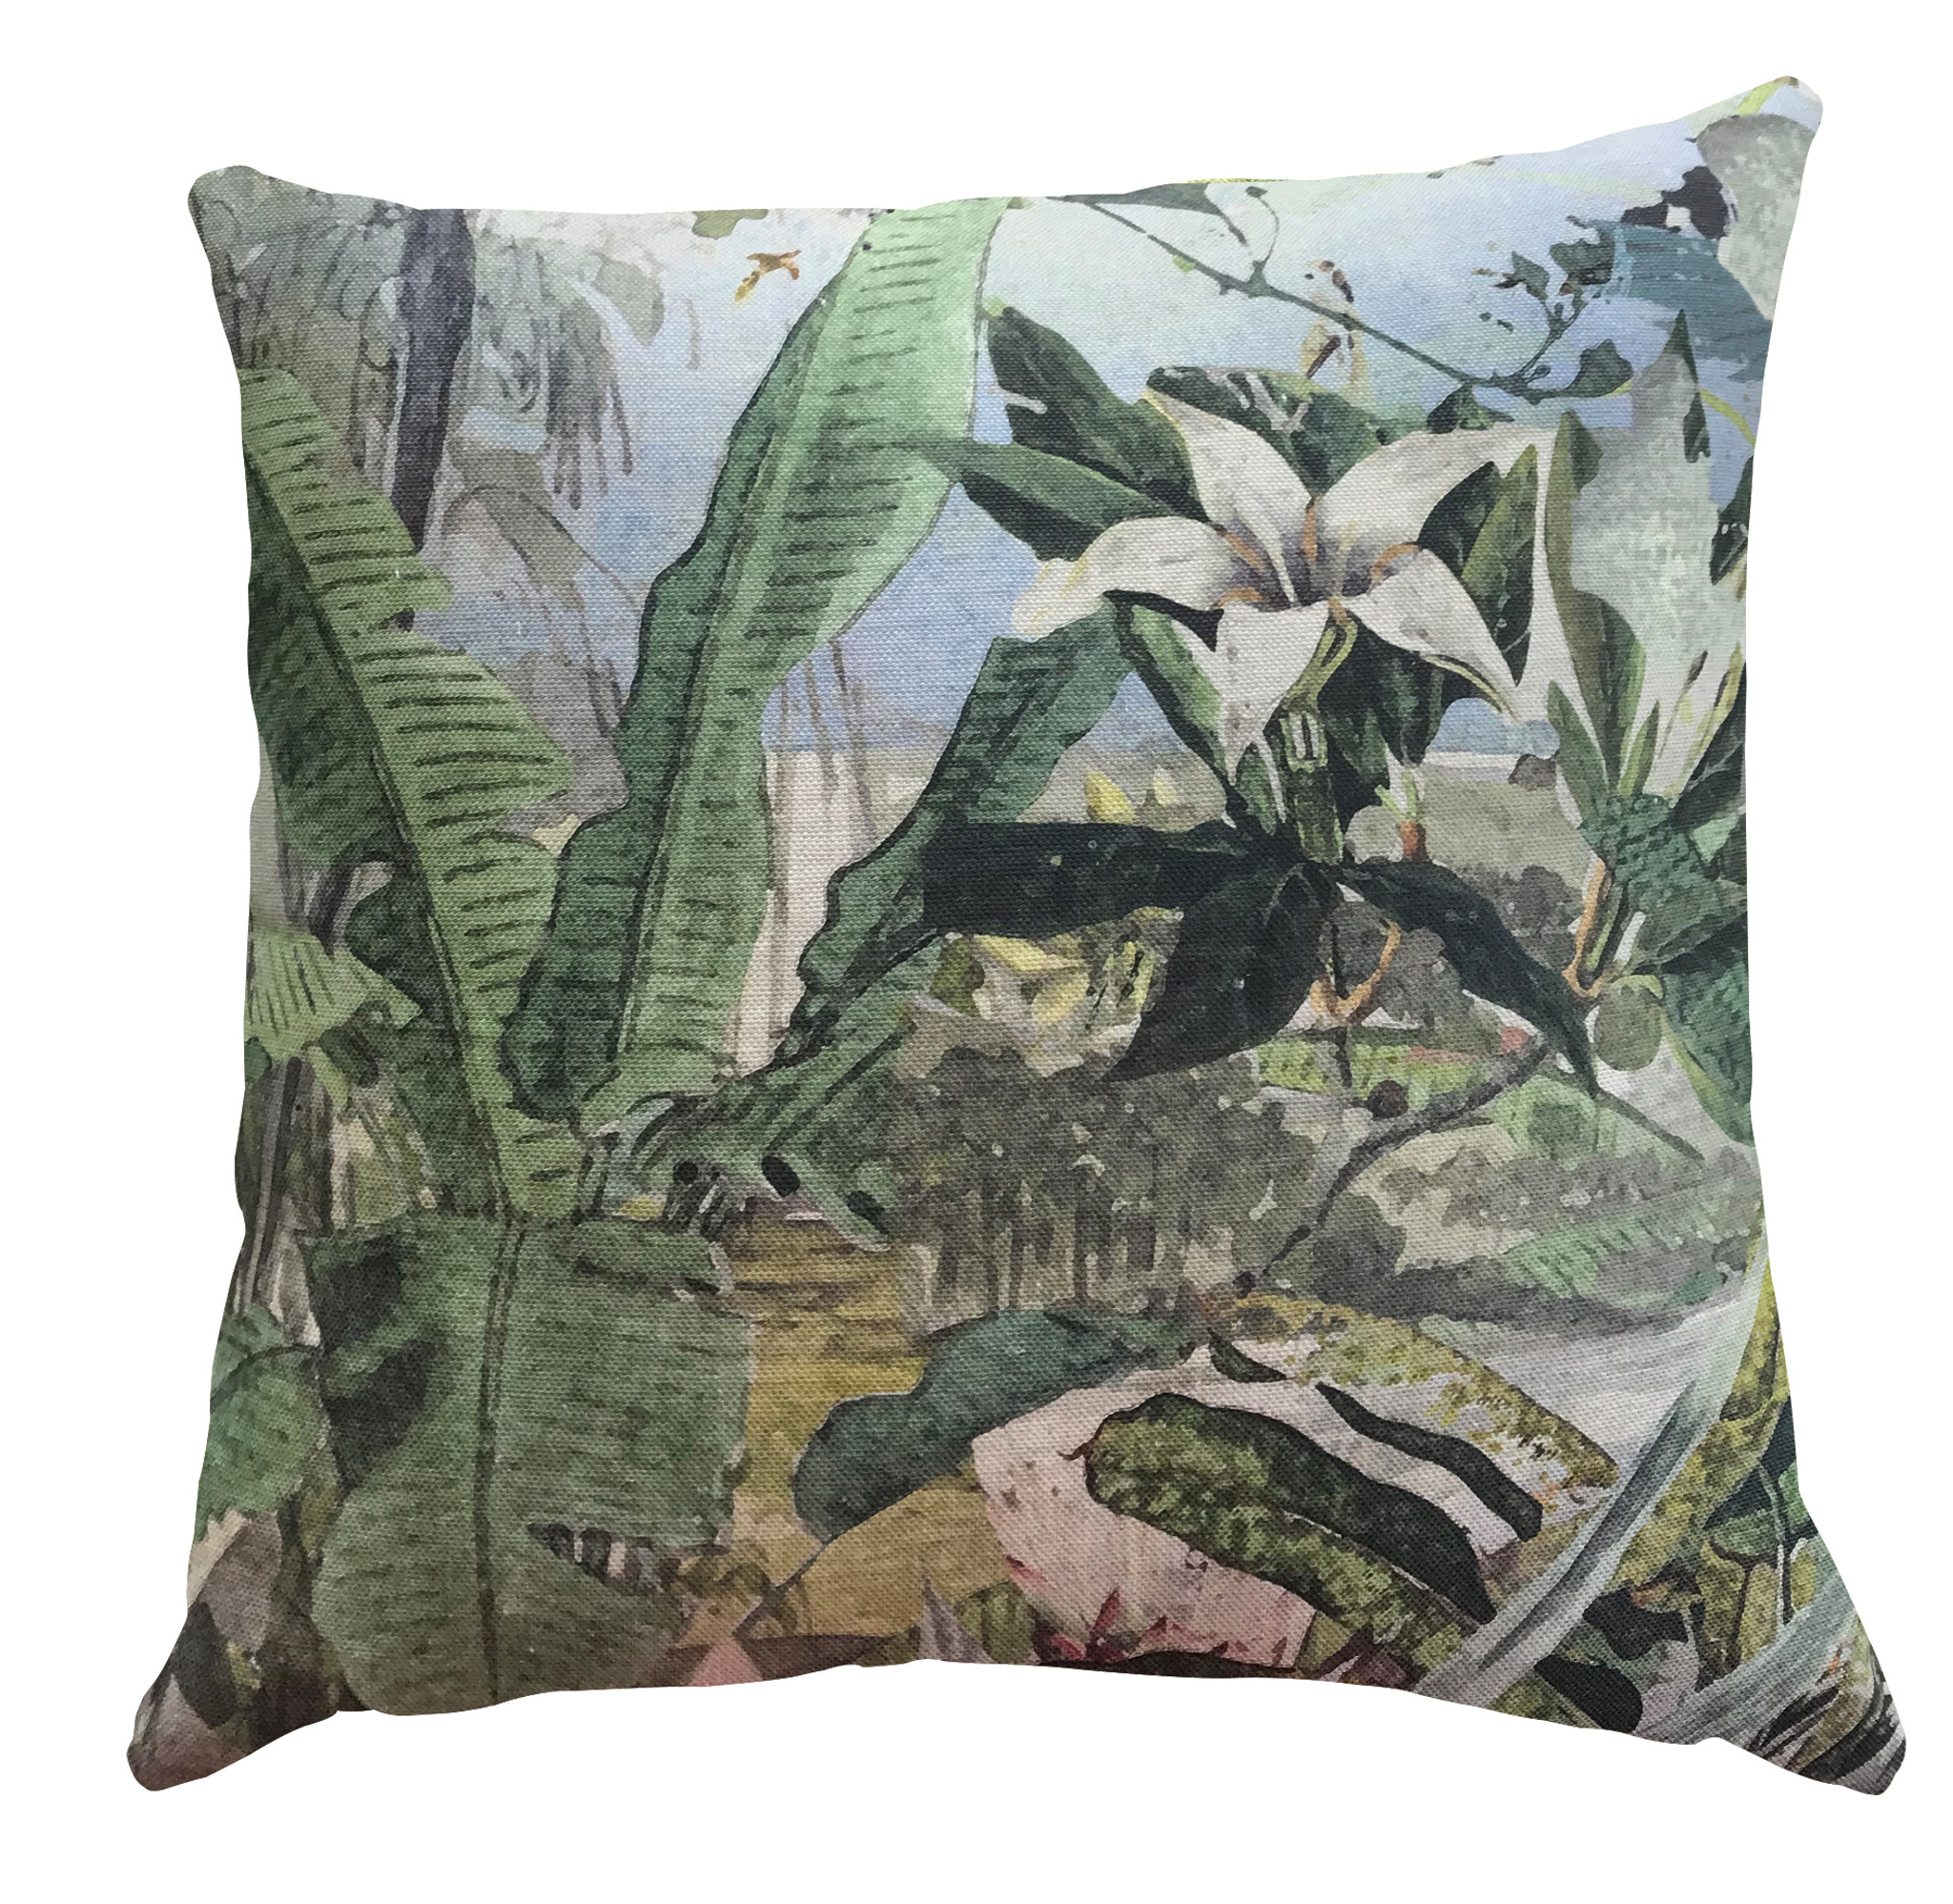 Outdoor Cushion Cover - Tropical Refuge